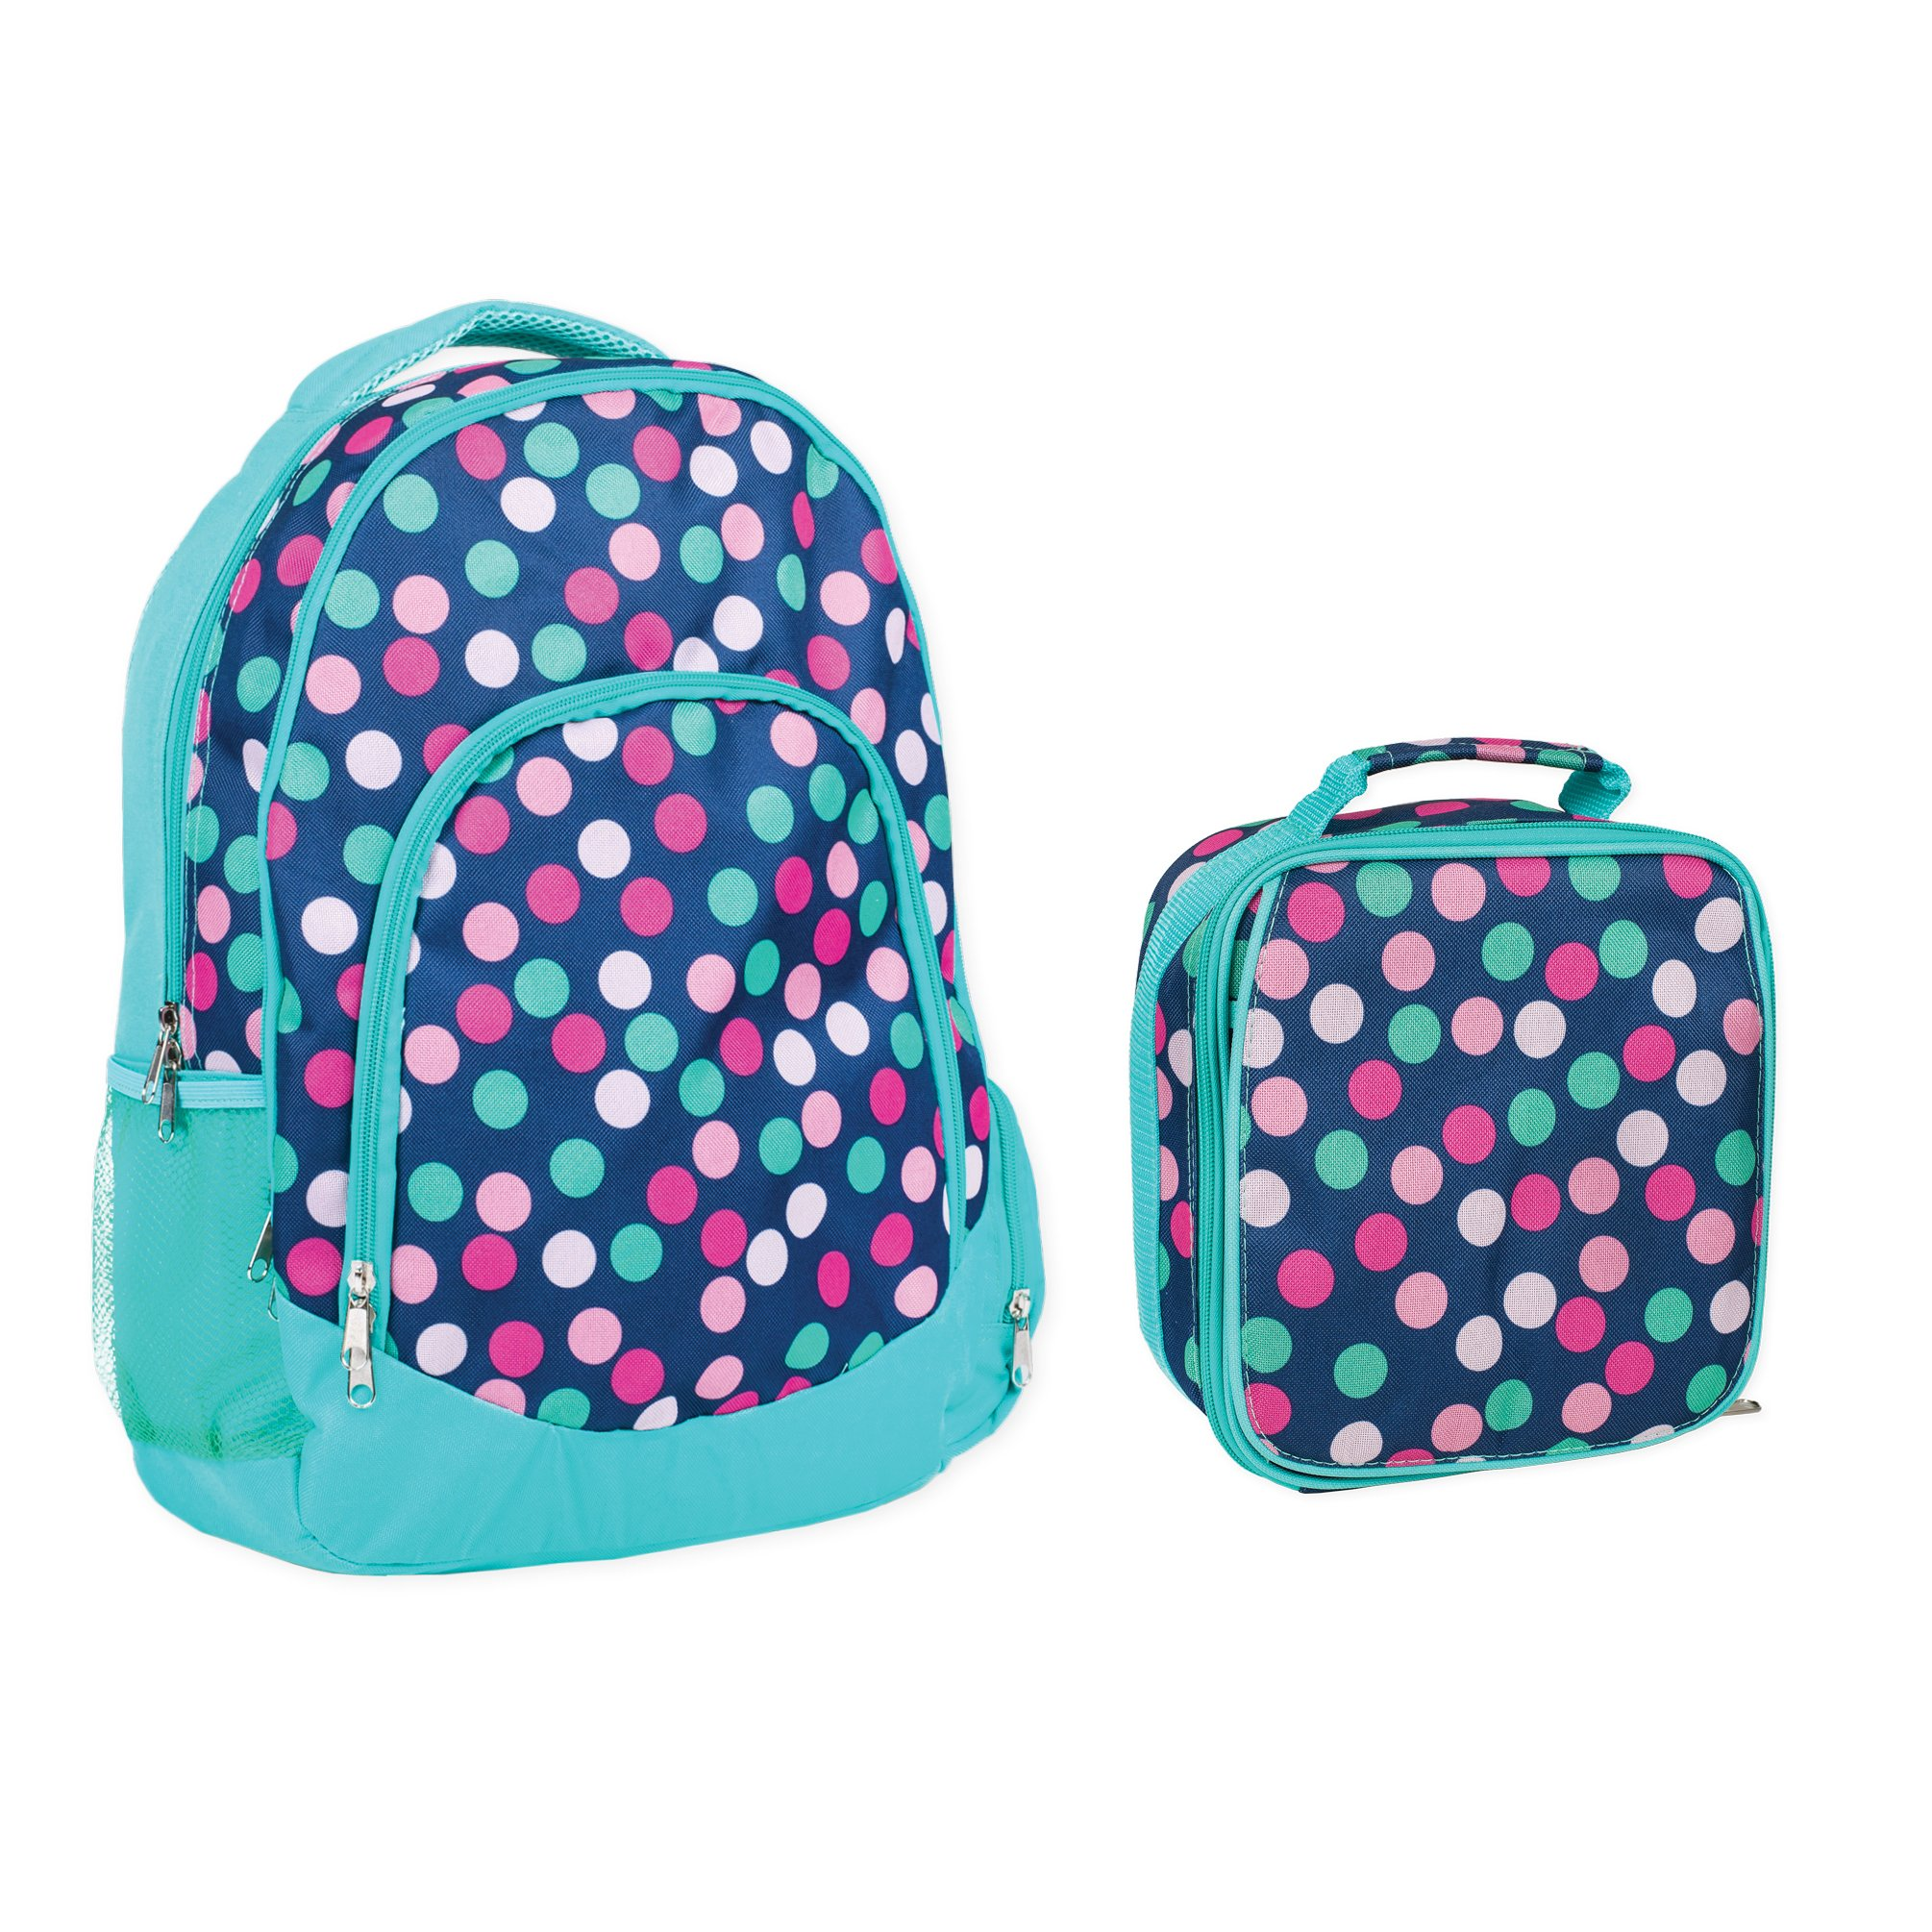 Reinforced Water Resistant School Backpack and Insulated Lunch Bag Set - Teal Navy Party Polka Dot by Class Collections